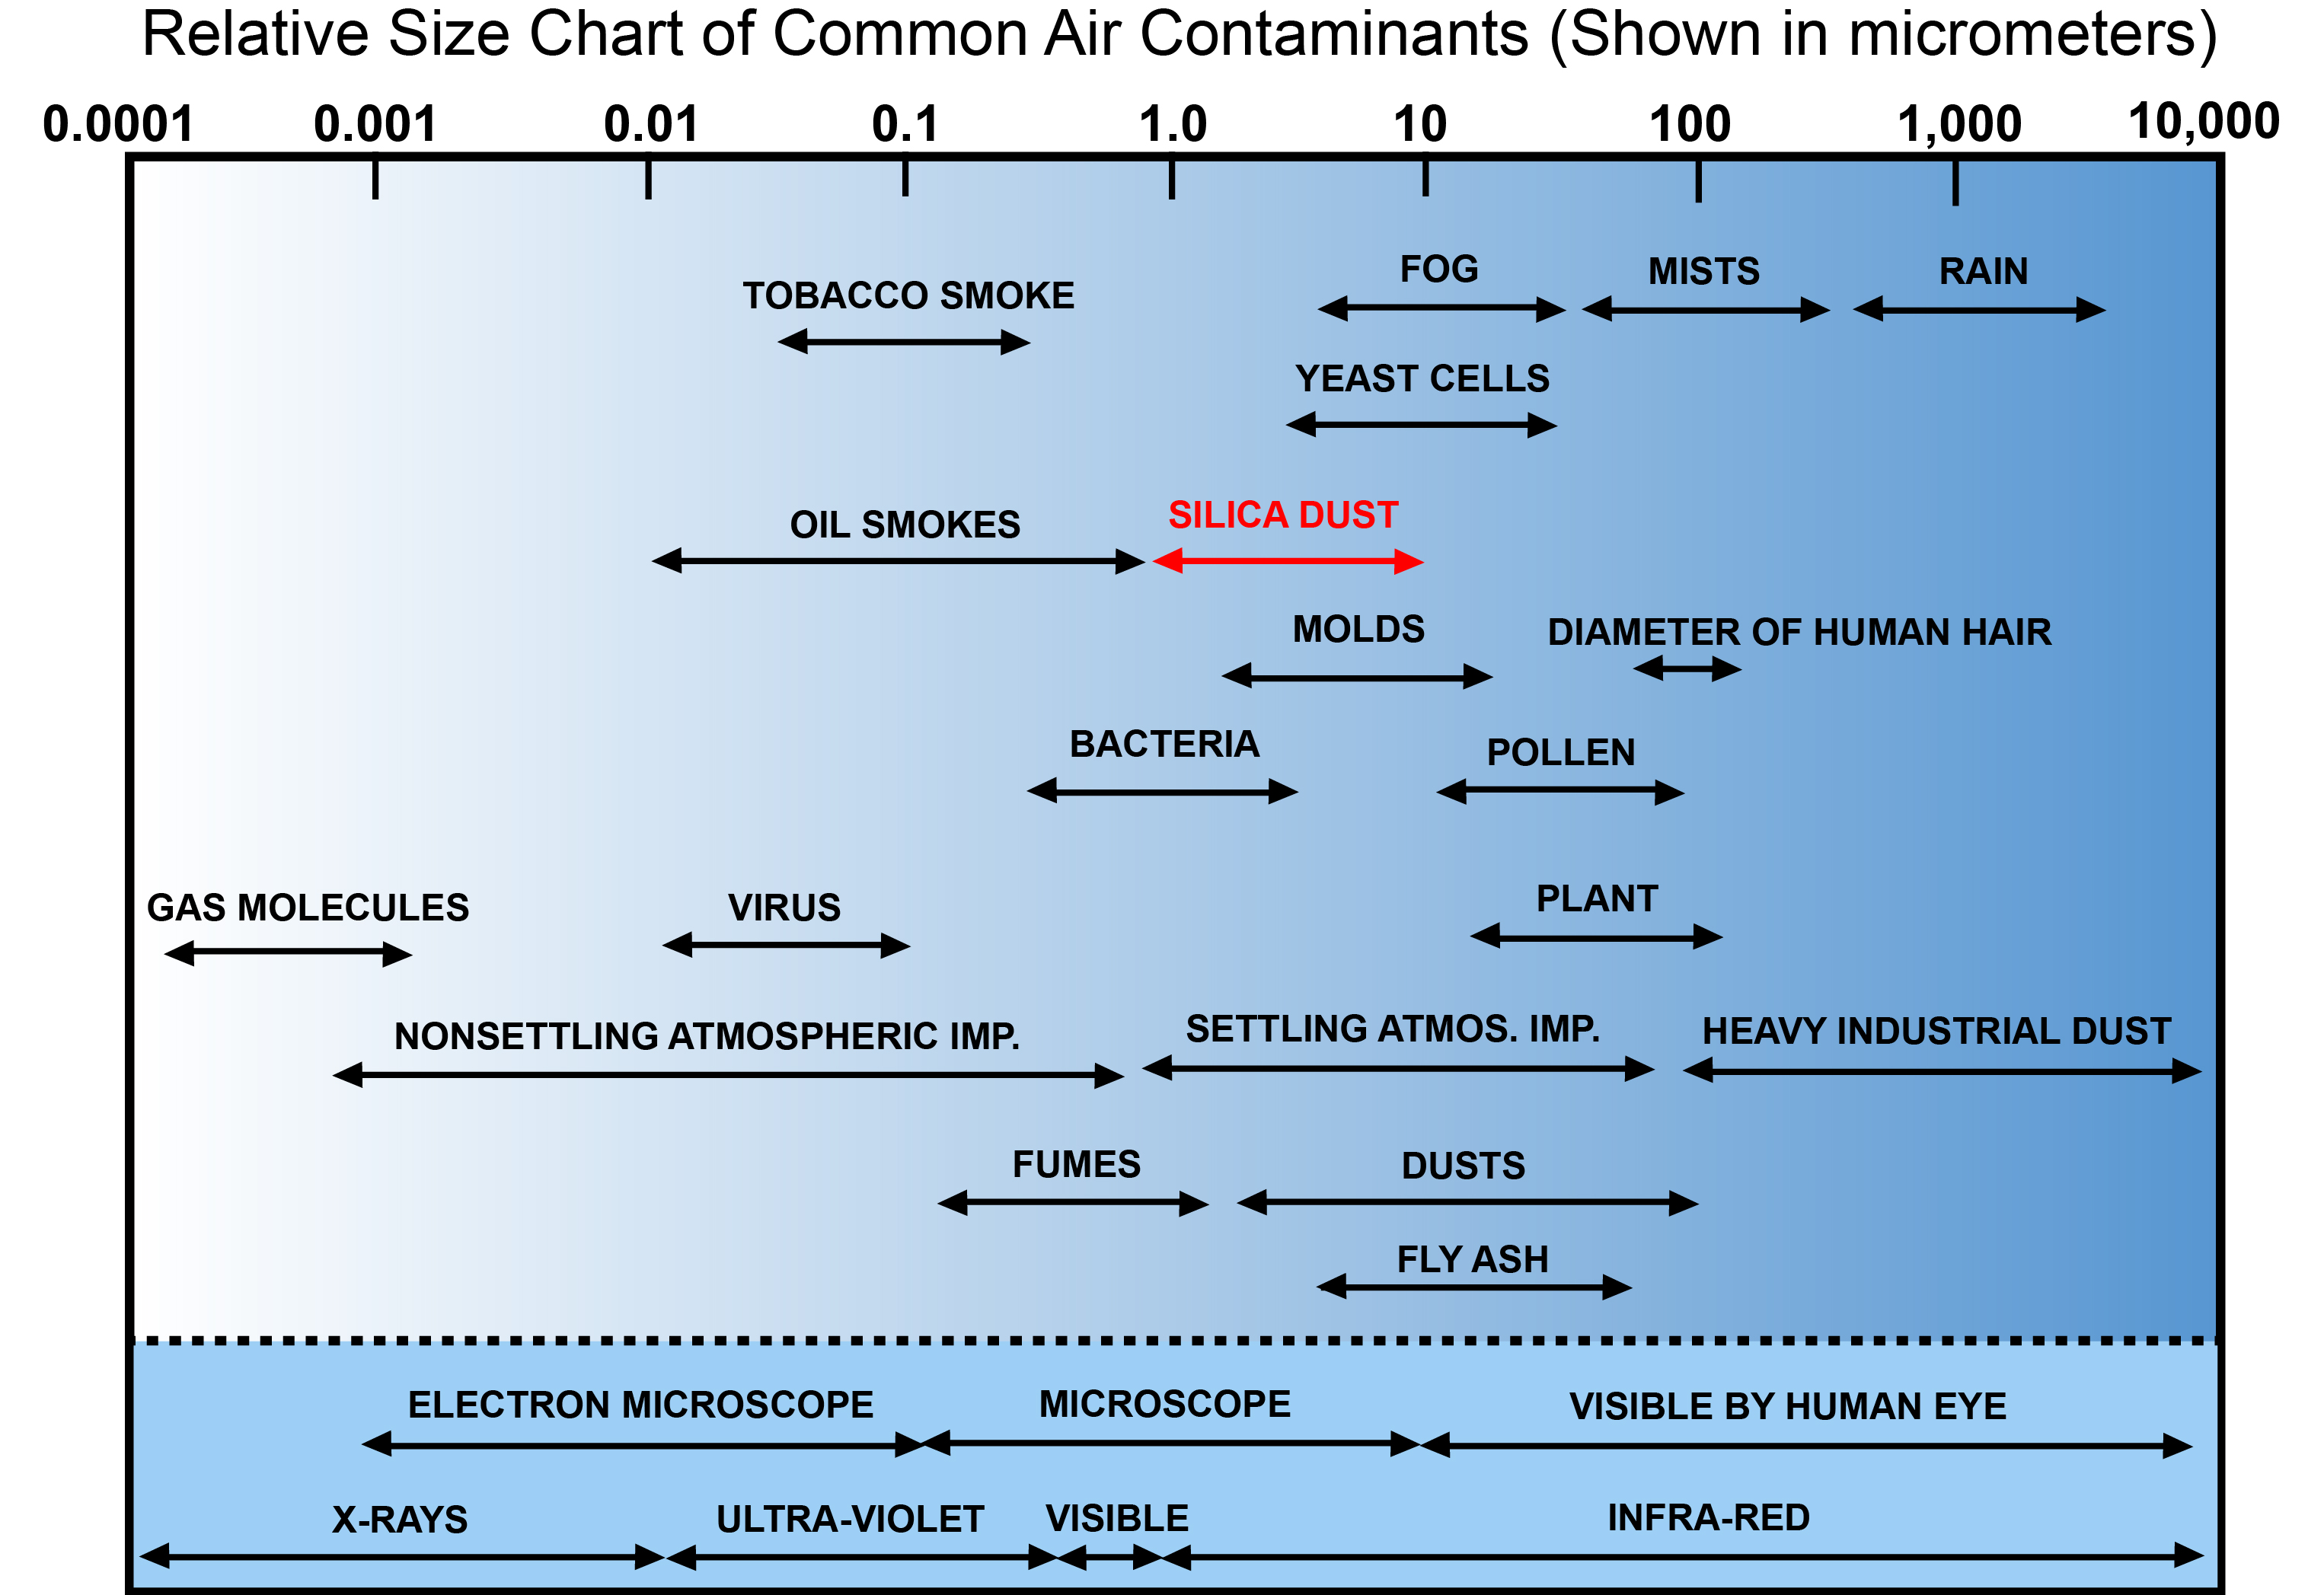 AMI Environmental Silica Exposure Health Effects & Risks ...